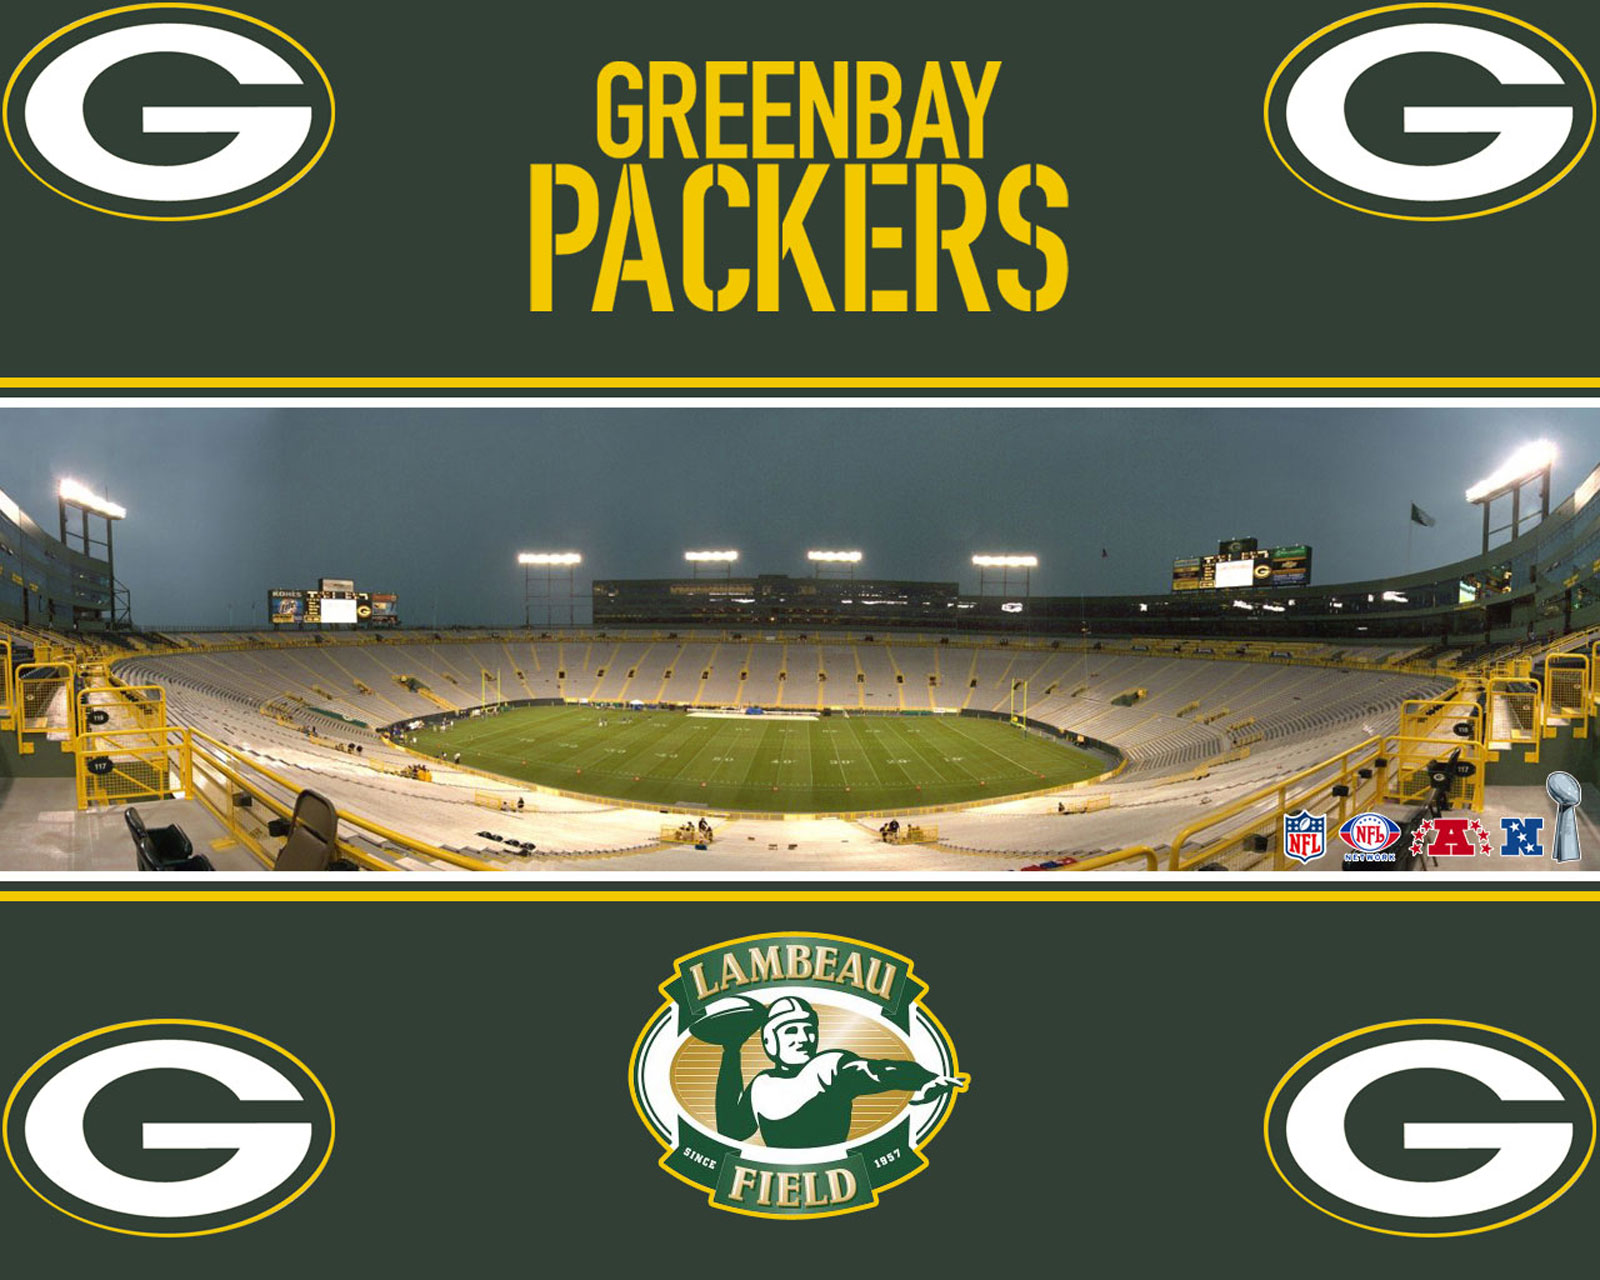 green bay packers images lambeau field hd wallpaper and background photos